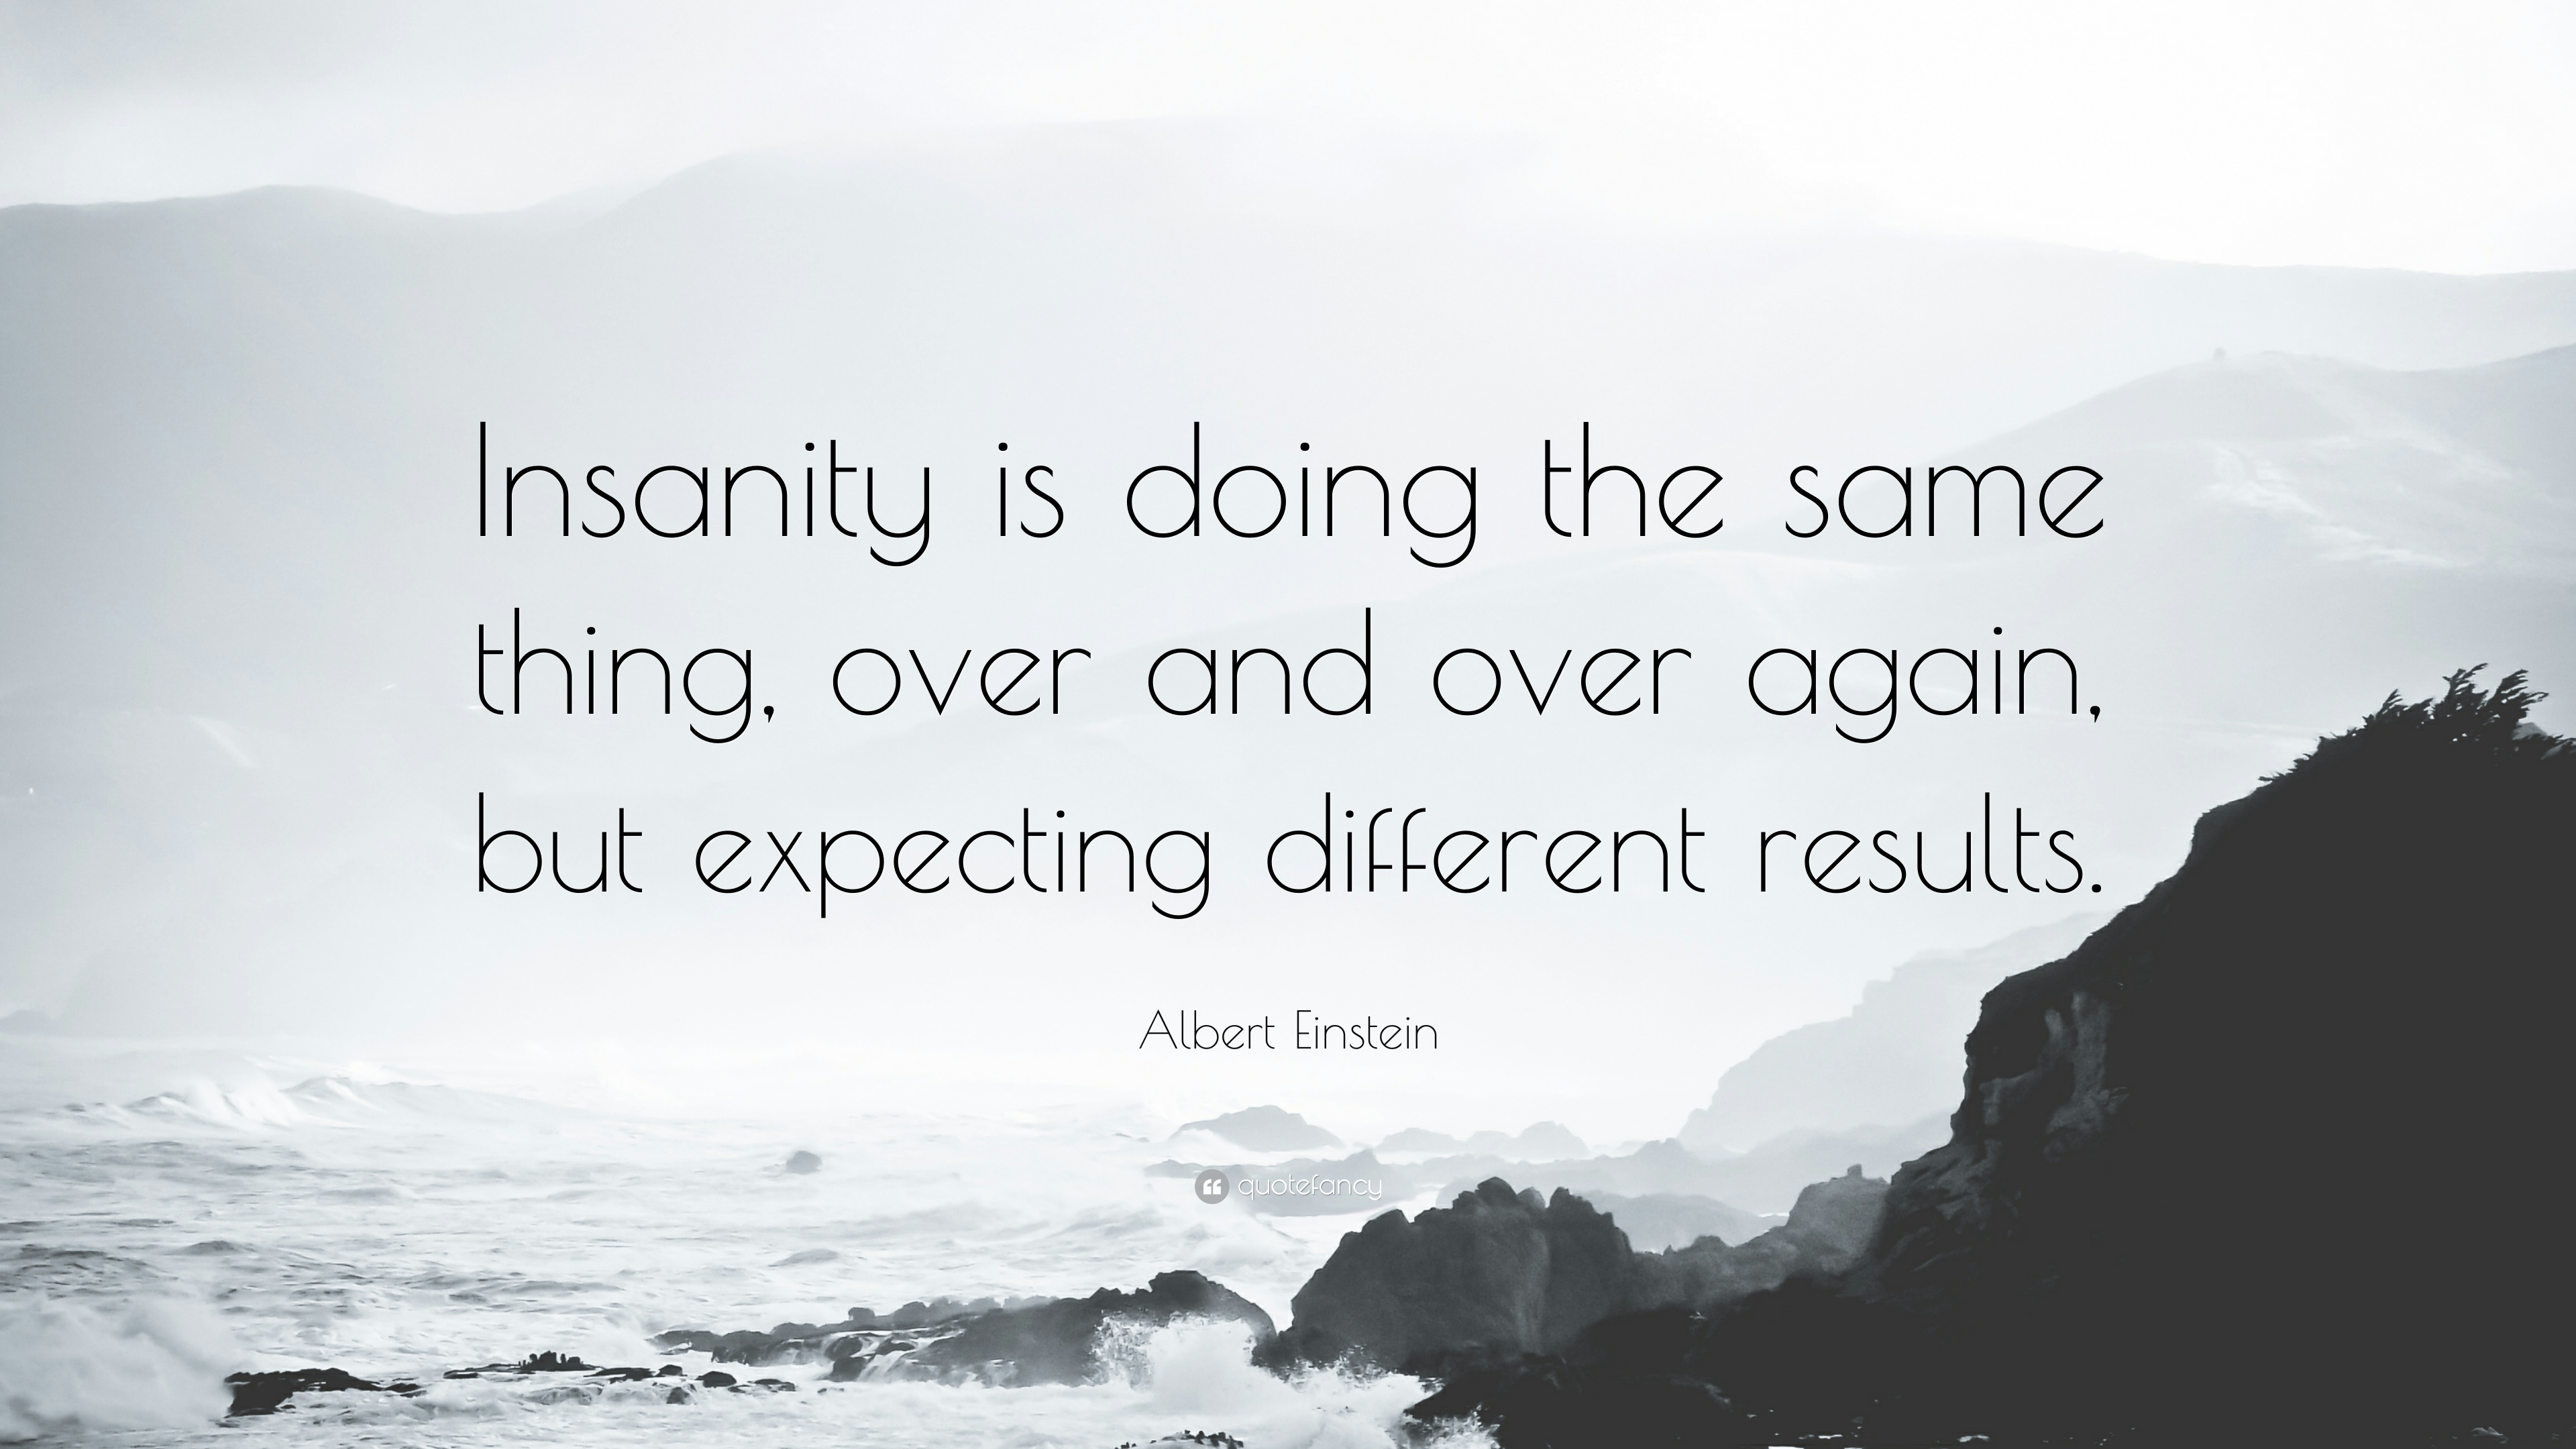 Albert Einstein Quote: Insanity is doing the same thing